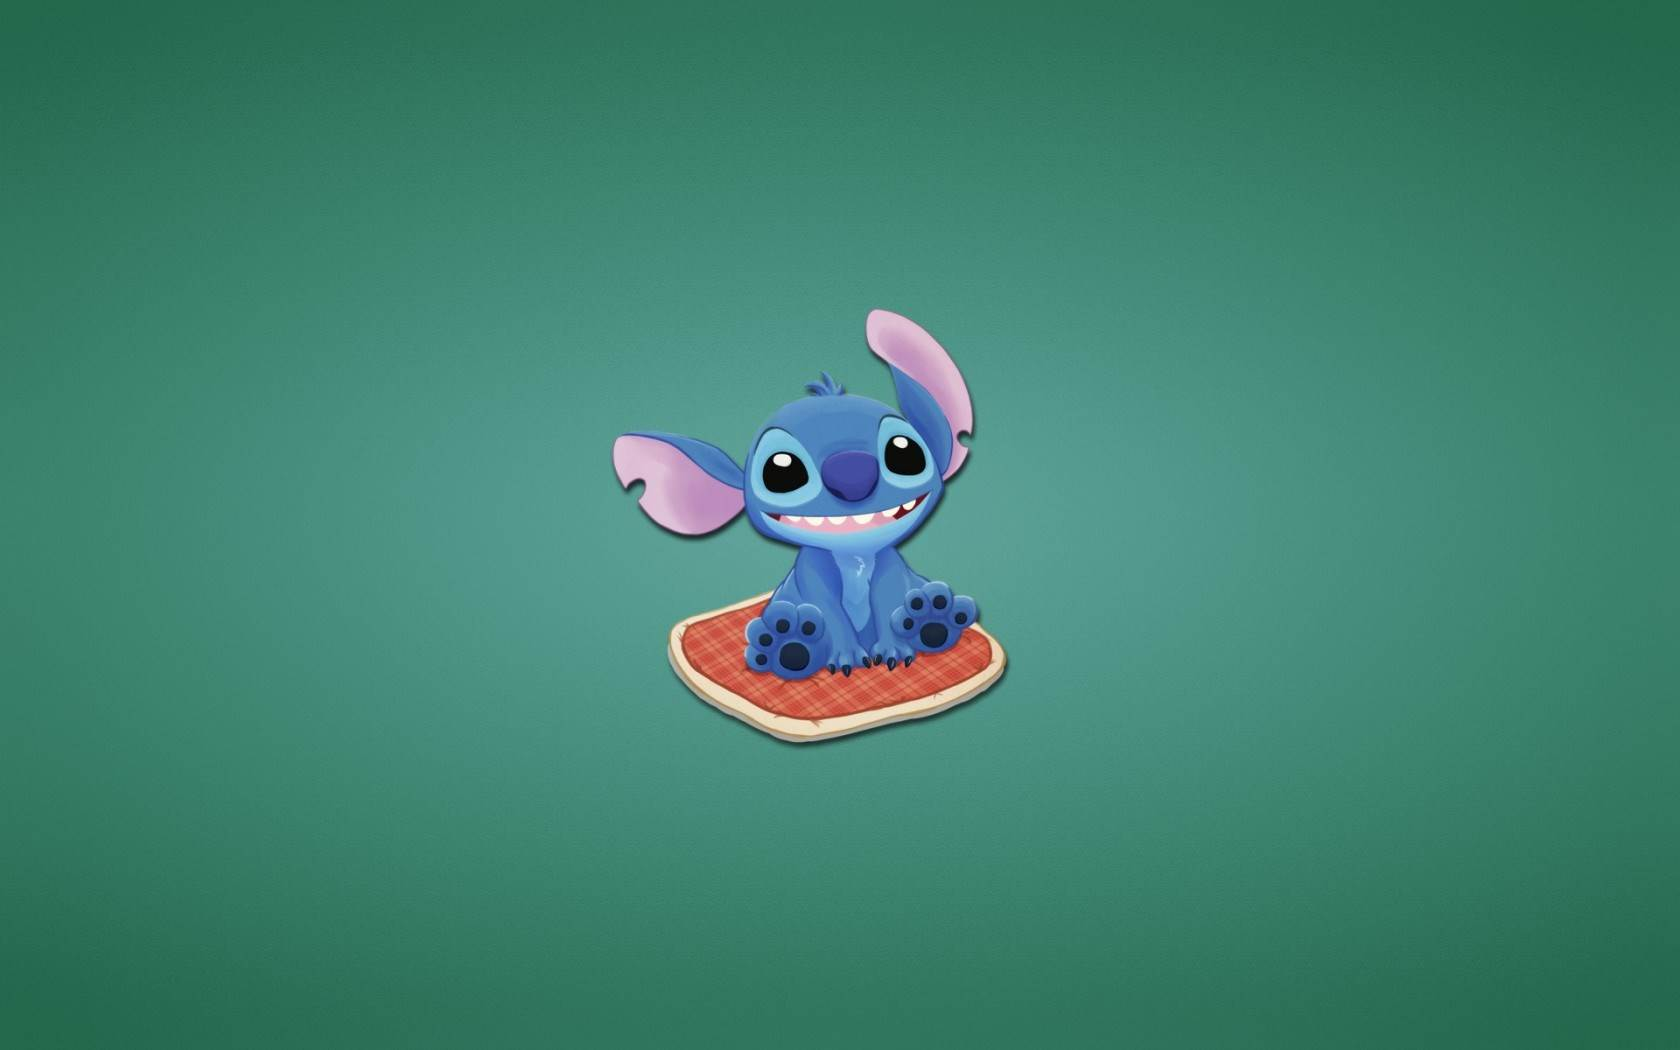 Cartoon Stitch Wallpapers  Pixels Talk 1680x1050